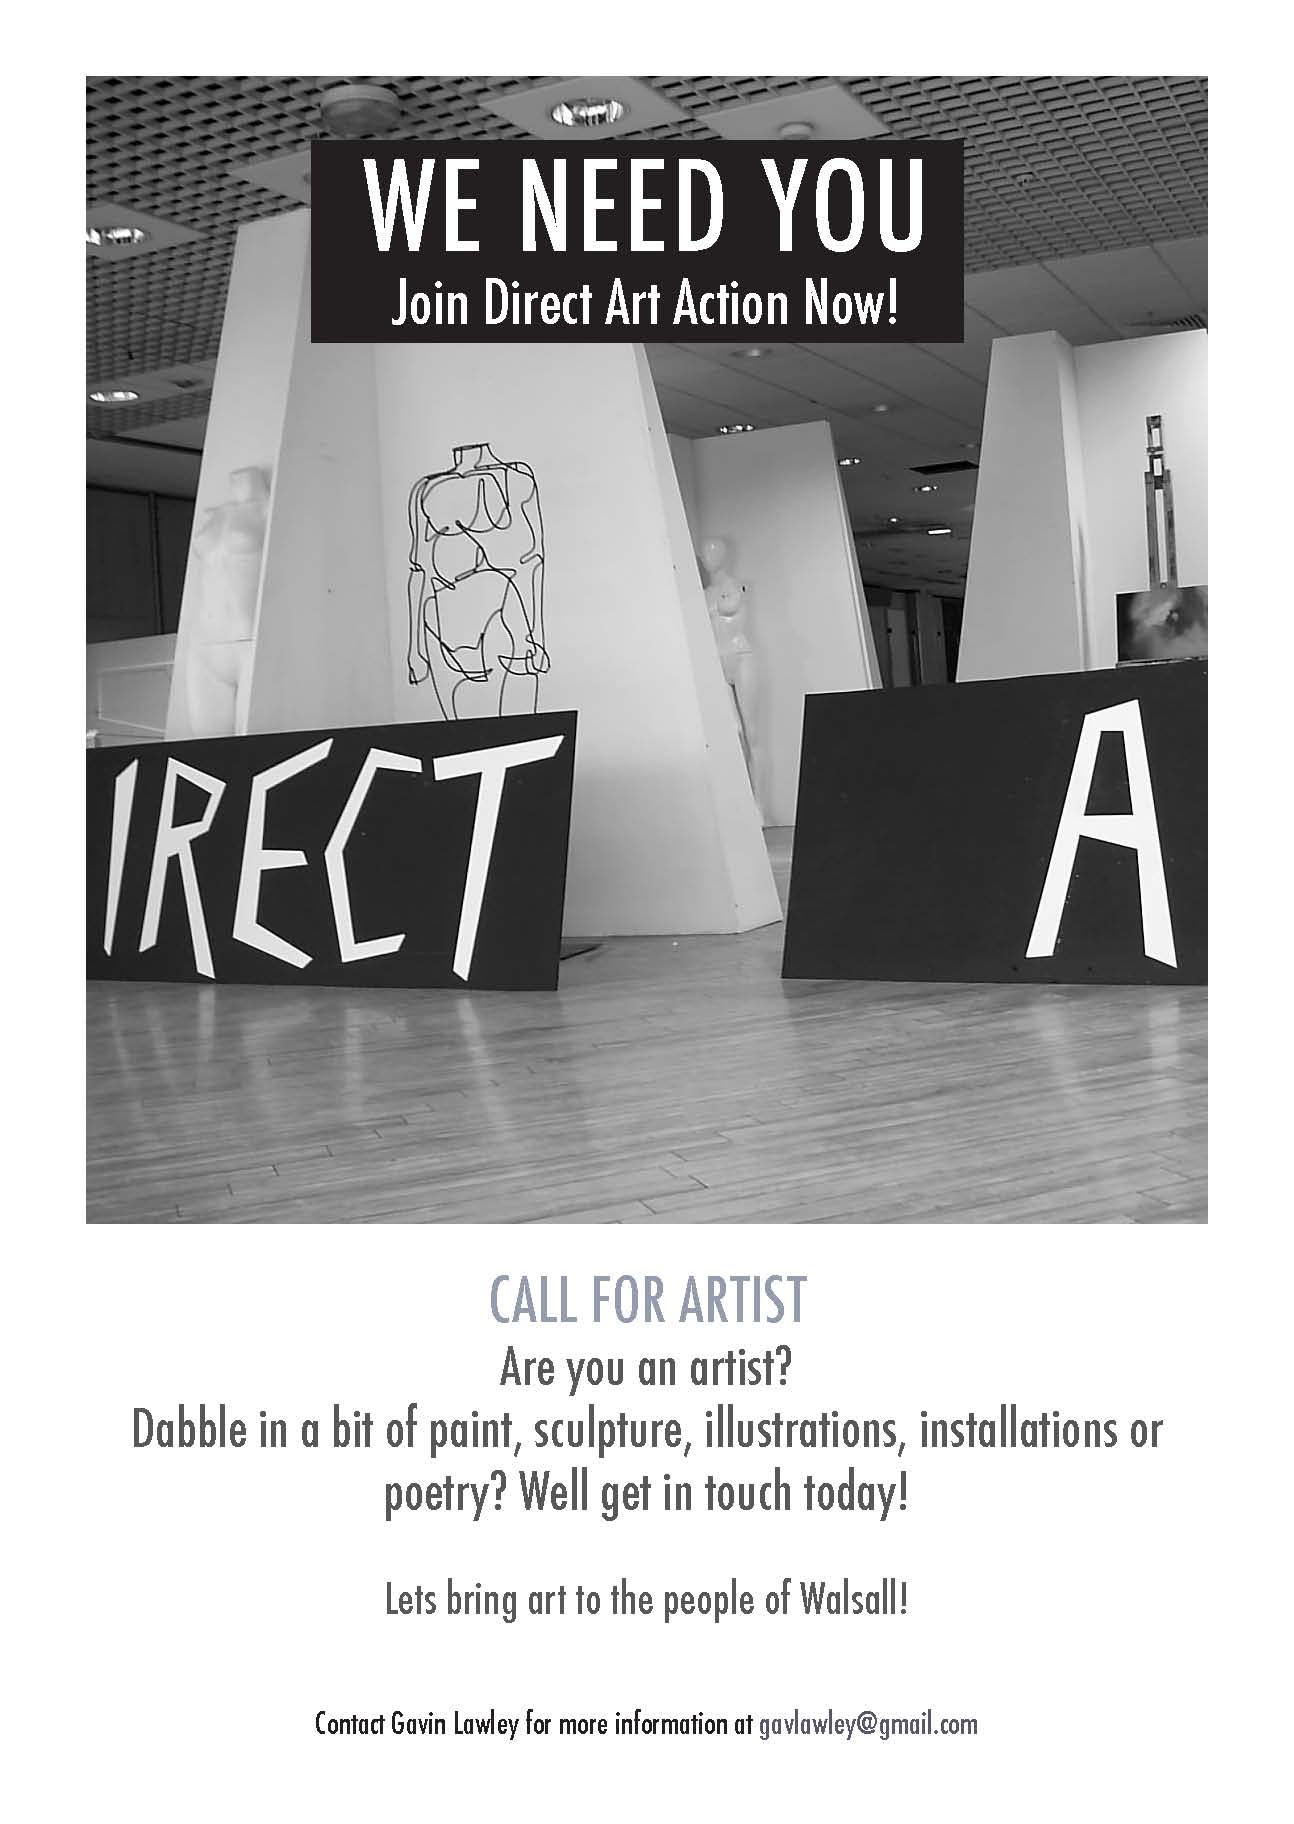 Direct Art Action